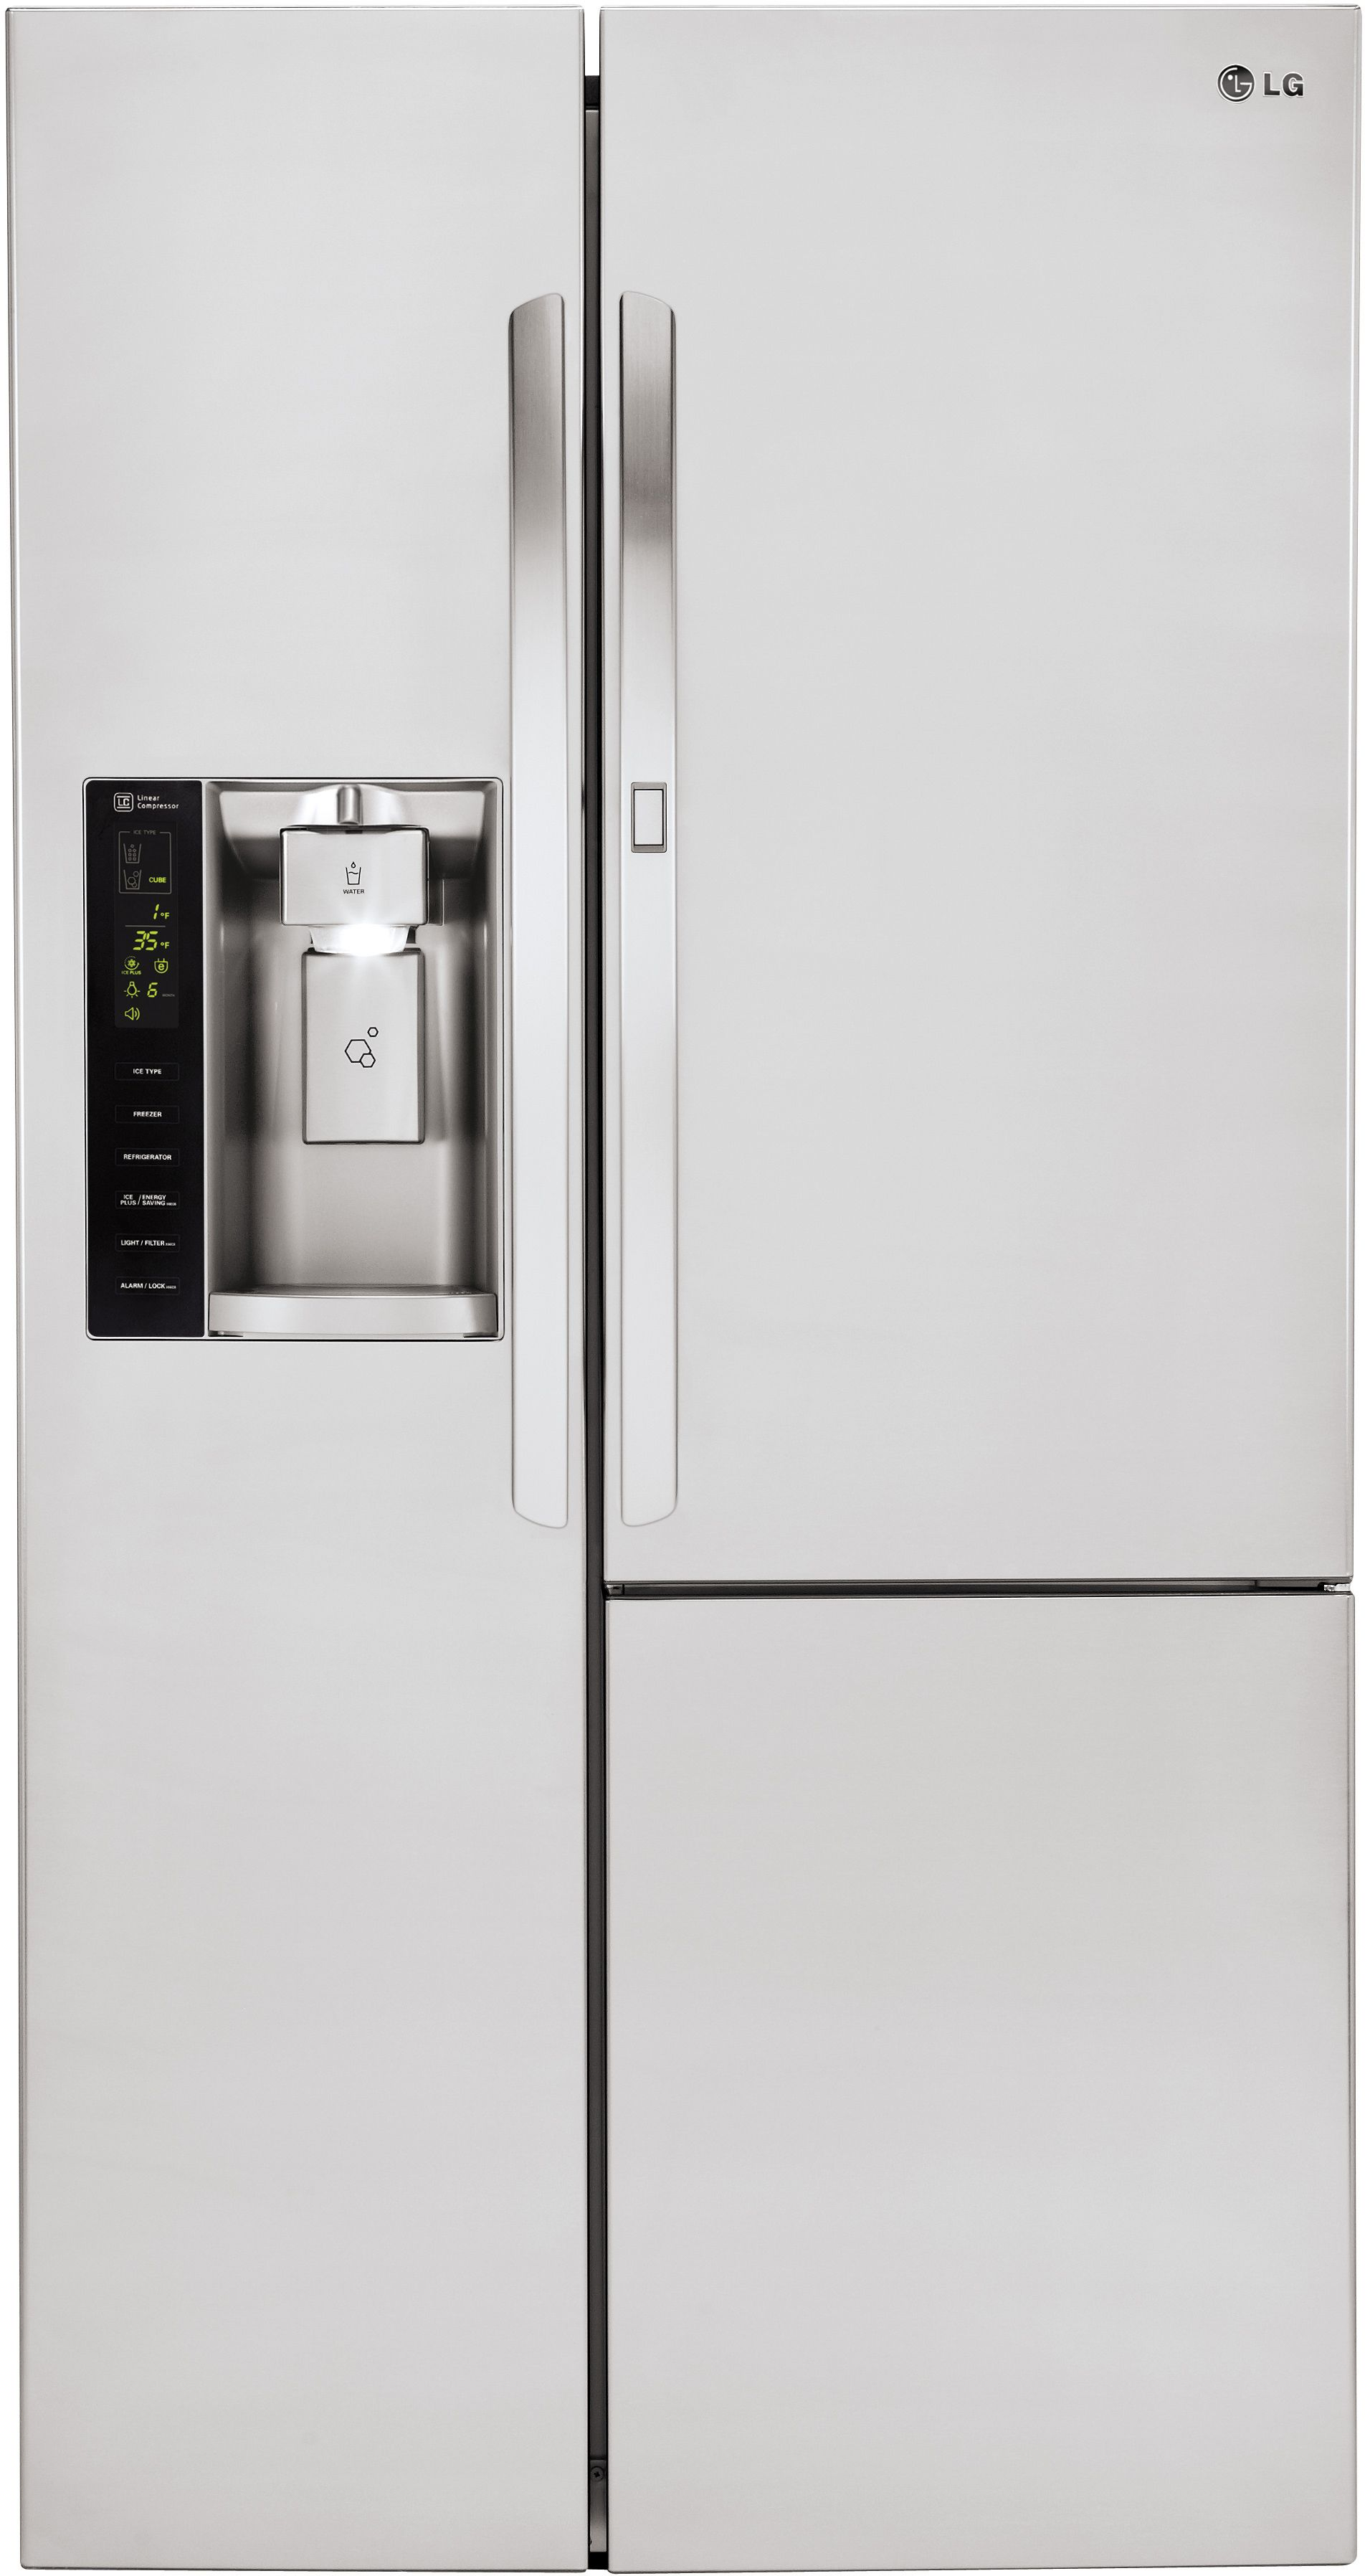 Beau Ft. Side By Side Refrigerator Stainless Steel LSXS26366S